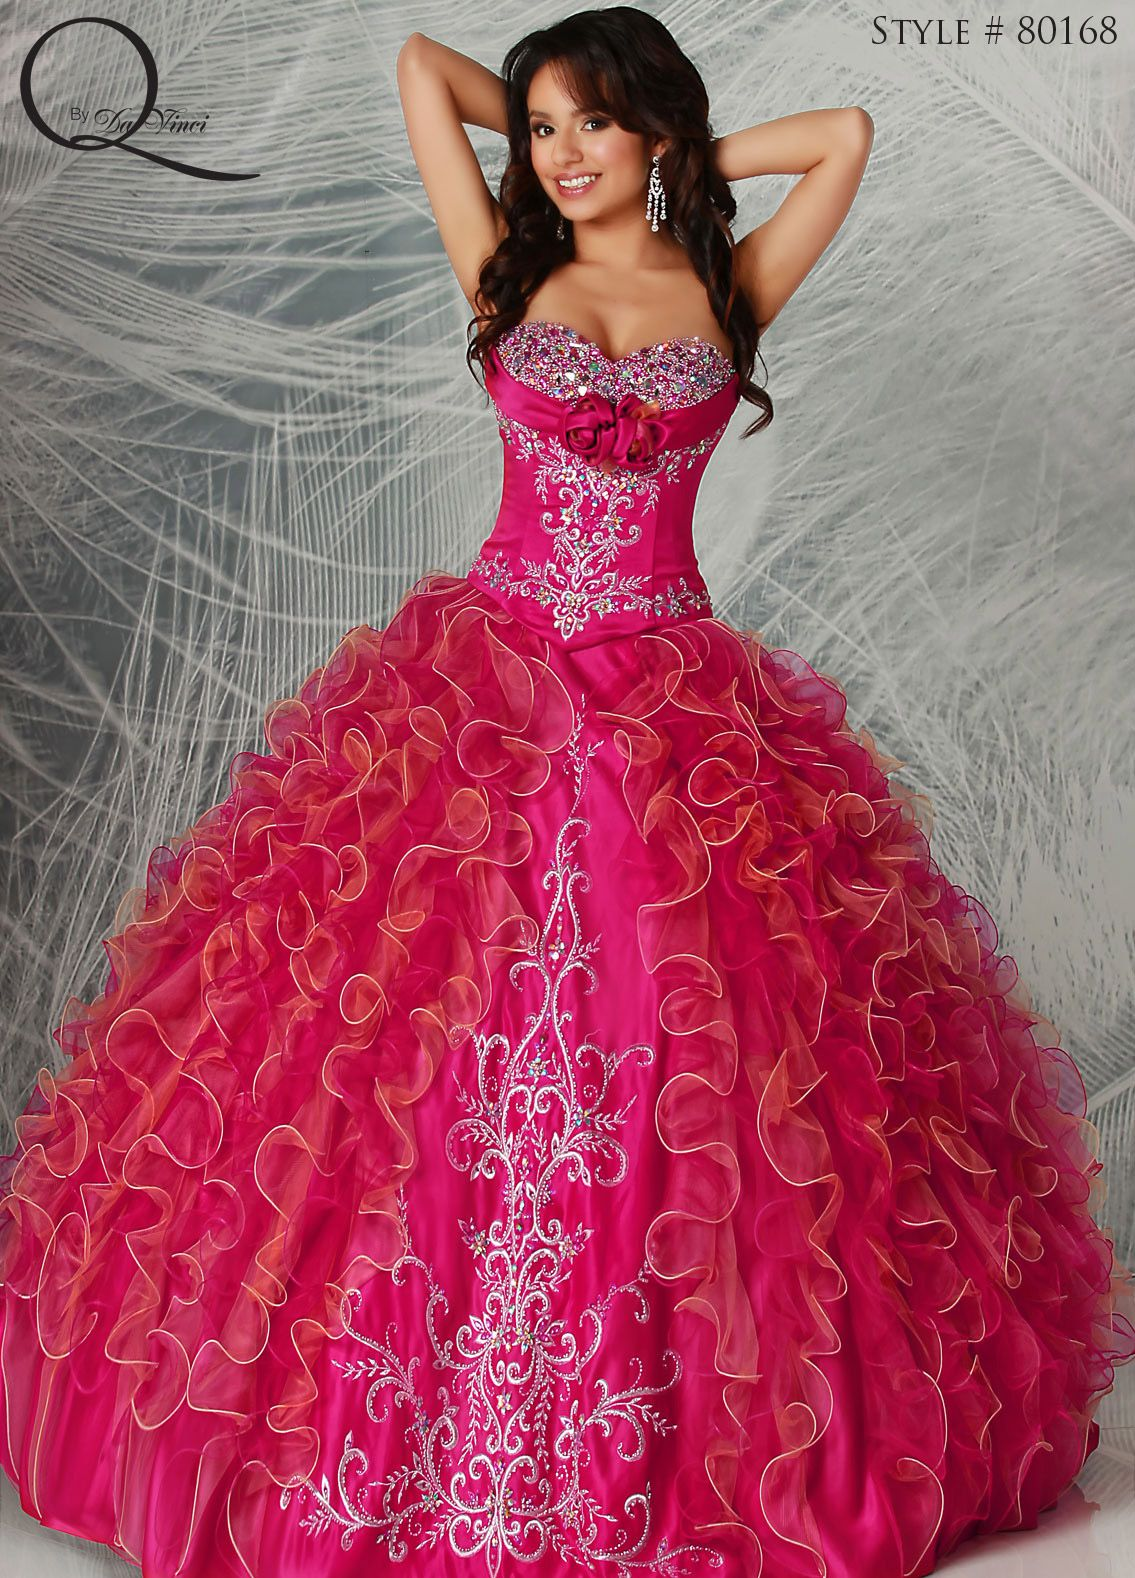 c67bc8afb1 Hot Pink Gold Silver Quinceanera dress ~ Quinceanera dresses from Q by  Davinci  quince XV años. Available in Dark Fuchsia Gold